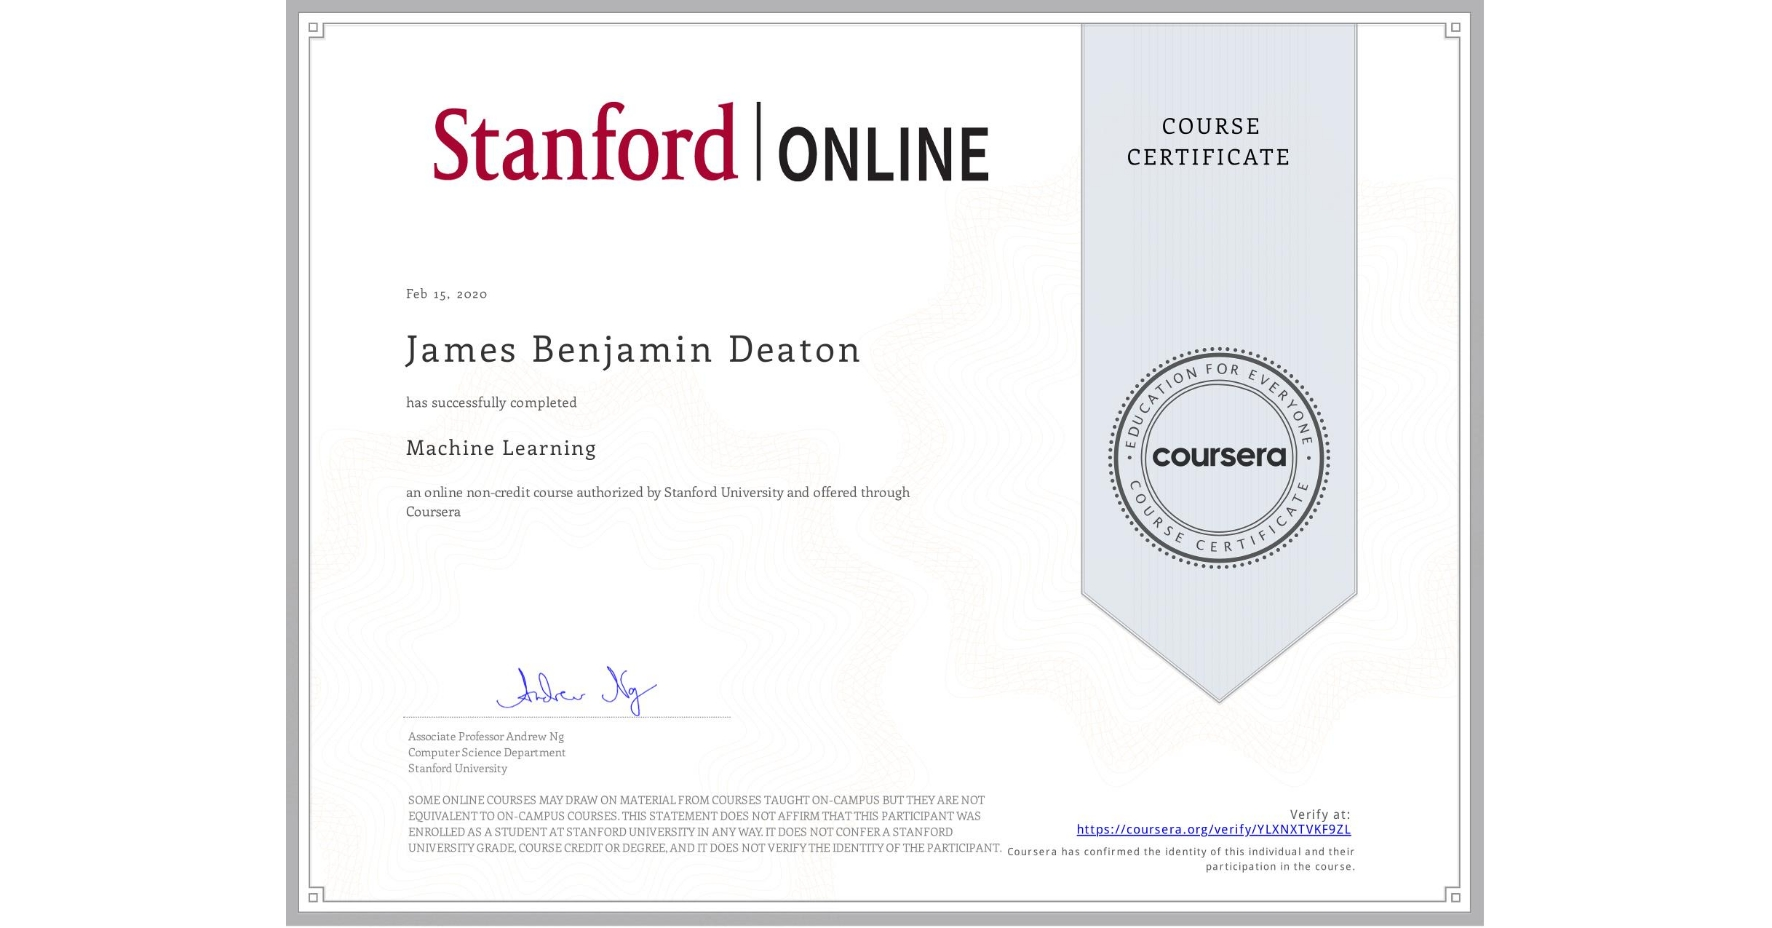 View certificate for James Benjamin Deaton, Machine Learning, an online non-credit course authorized by Stanford University and offered through Coursera